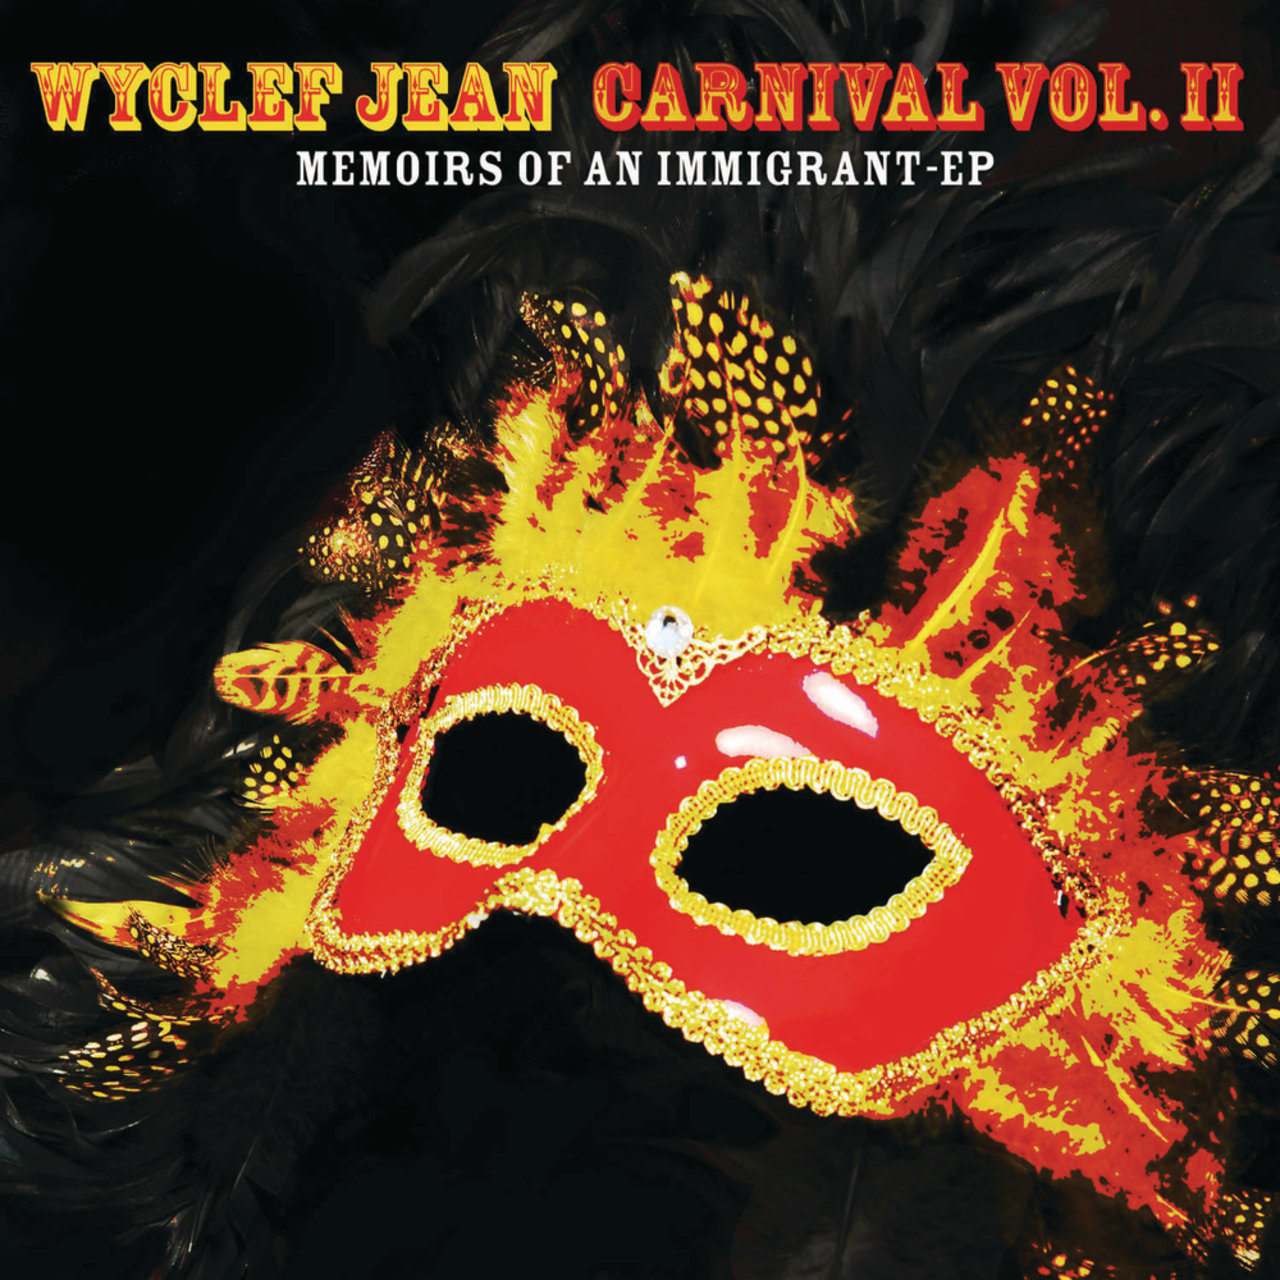 CARNIVAL VOL. II...Memoirs of an Immigrant - EP